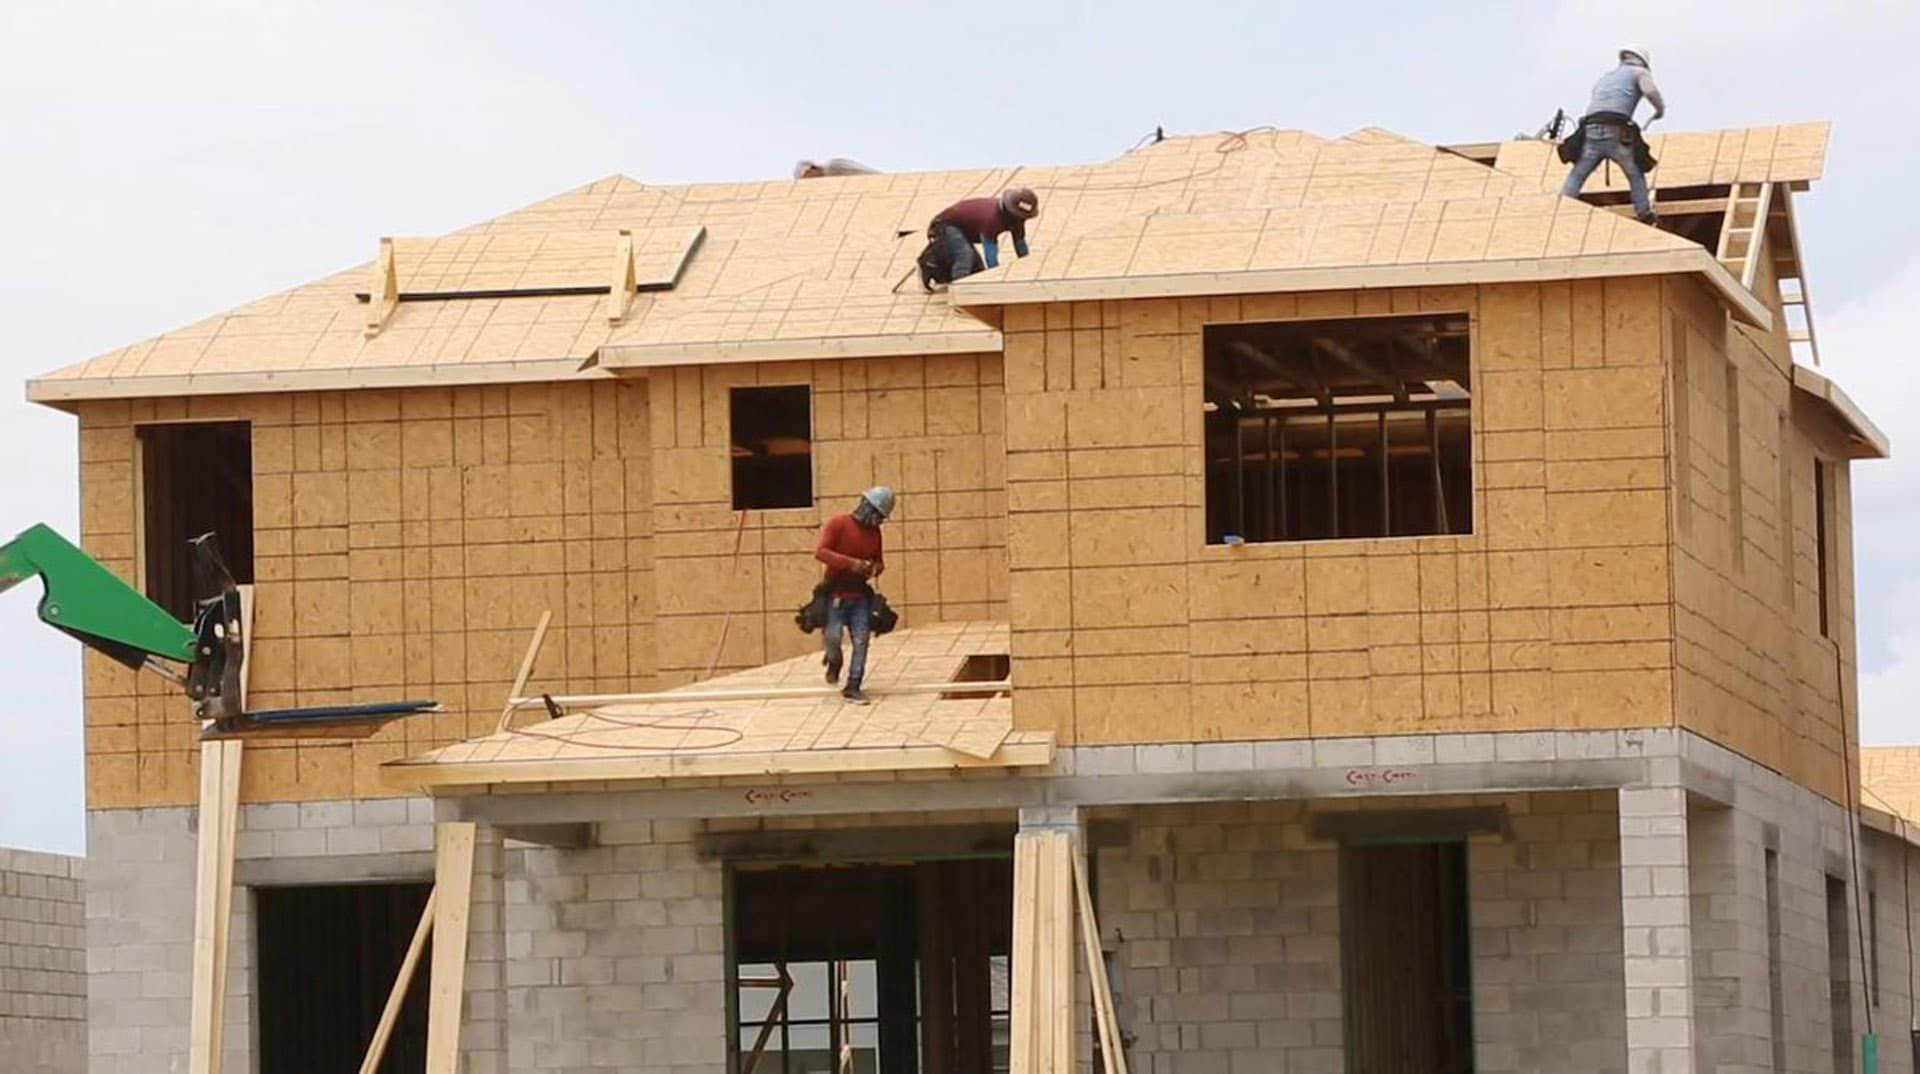 st. petersburg new construction mortgage, st. petersburg new construction mortgage, new construction mortgage st. petersburg , st. petersburg  mortgage